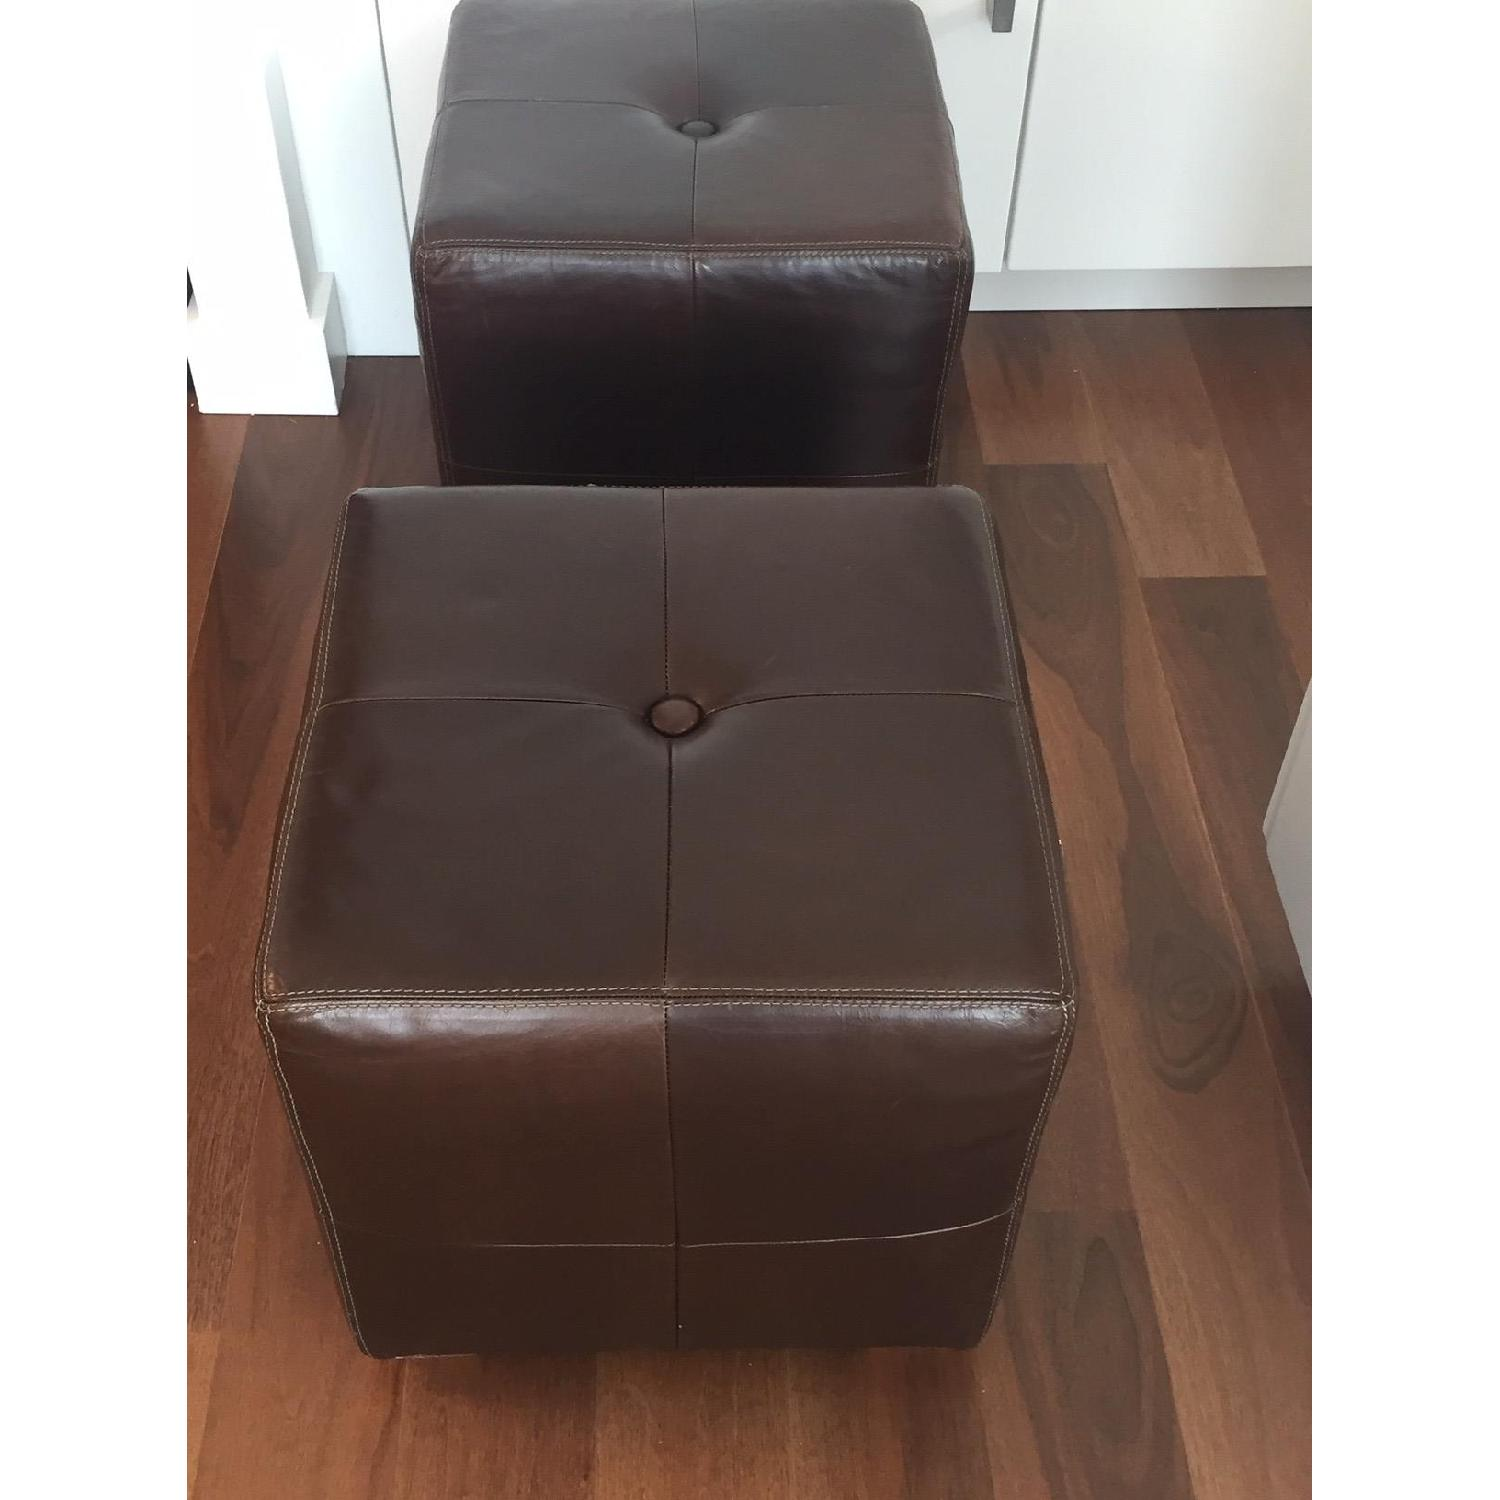 Pottery Barn Leather Square Ottoman - image-6